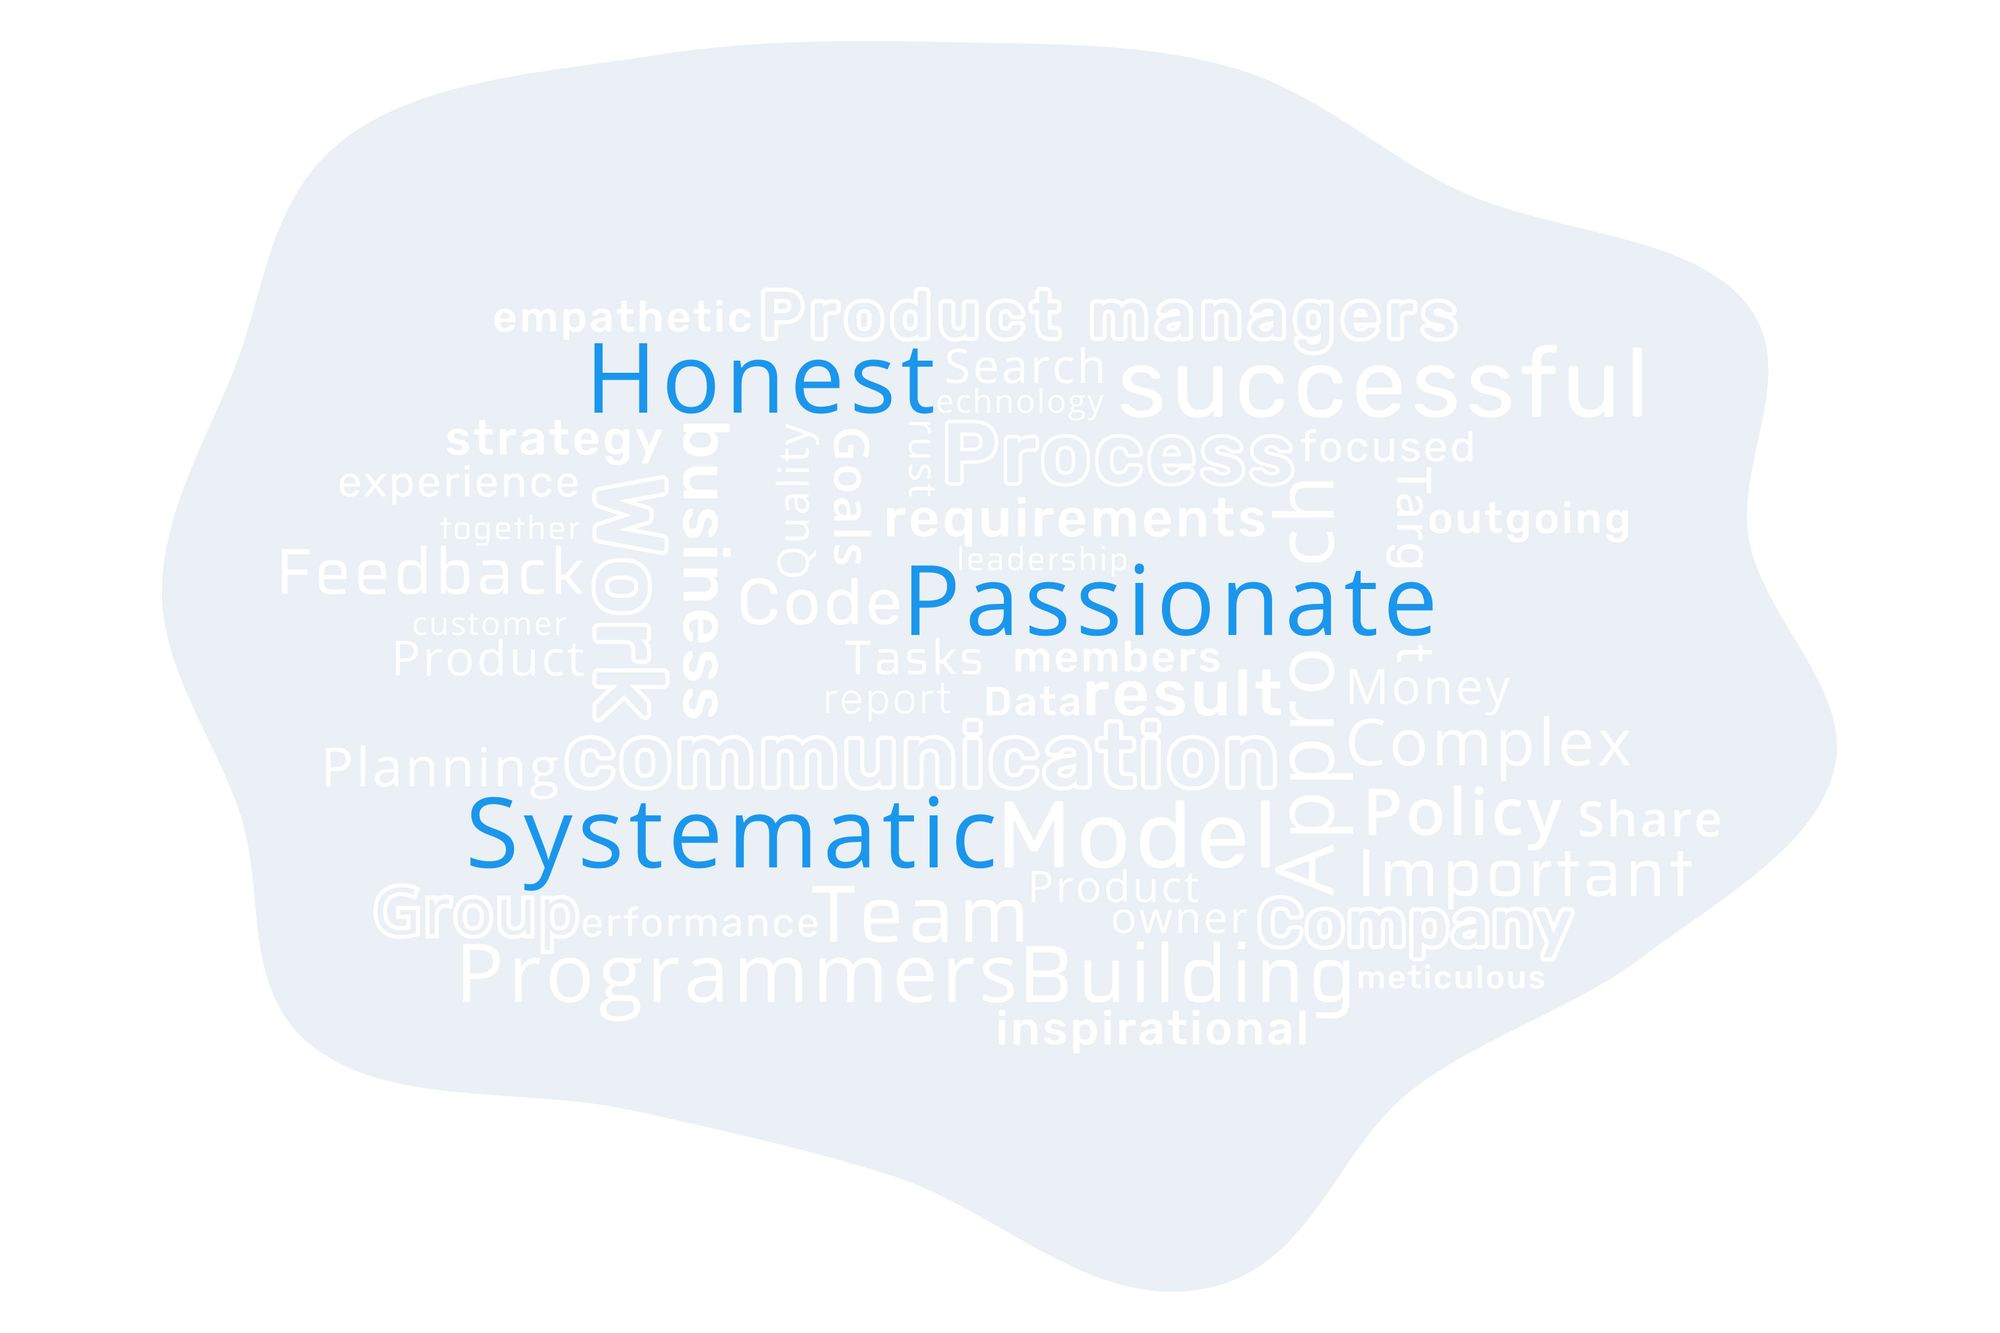 Product managers qualities